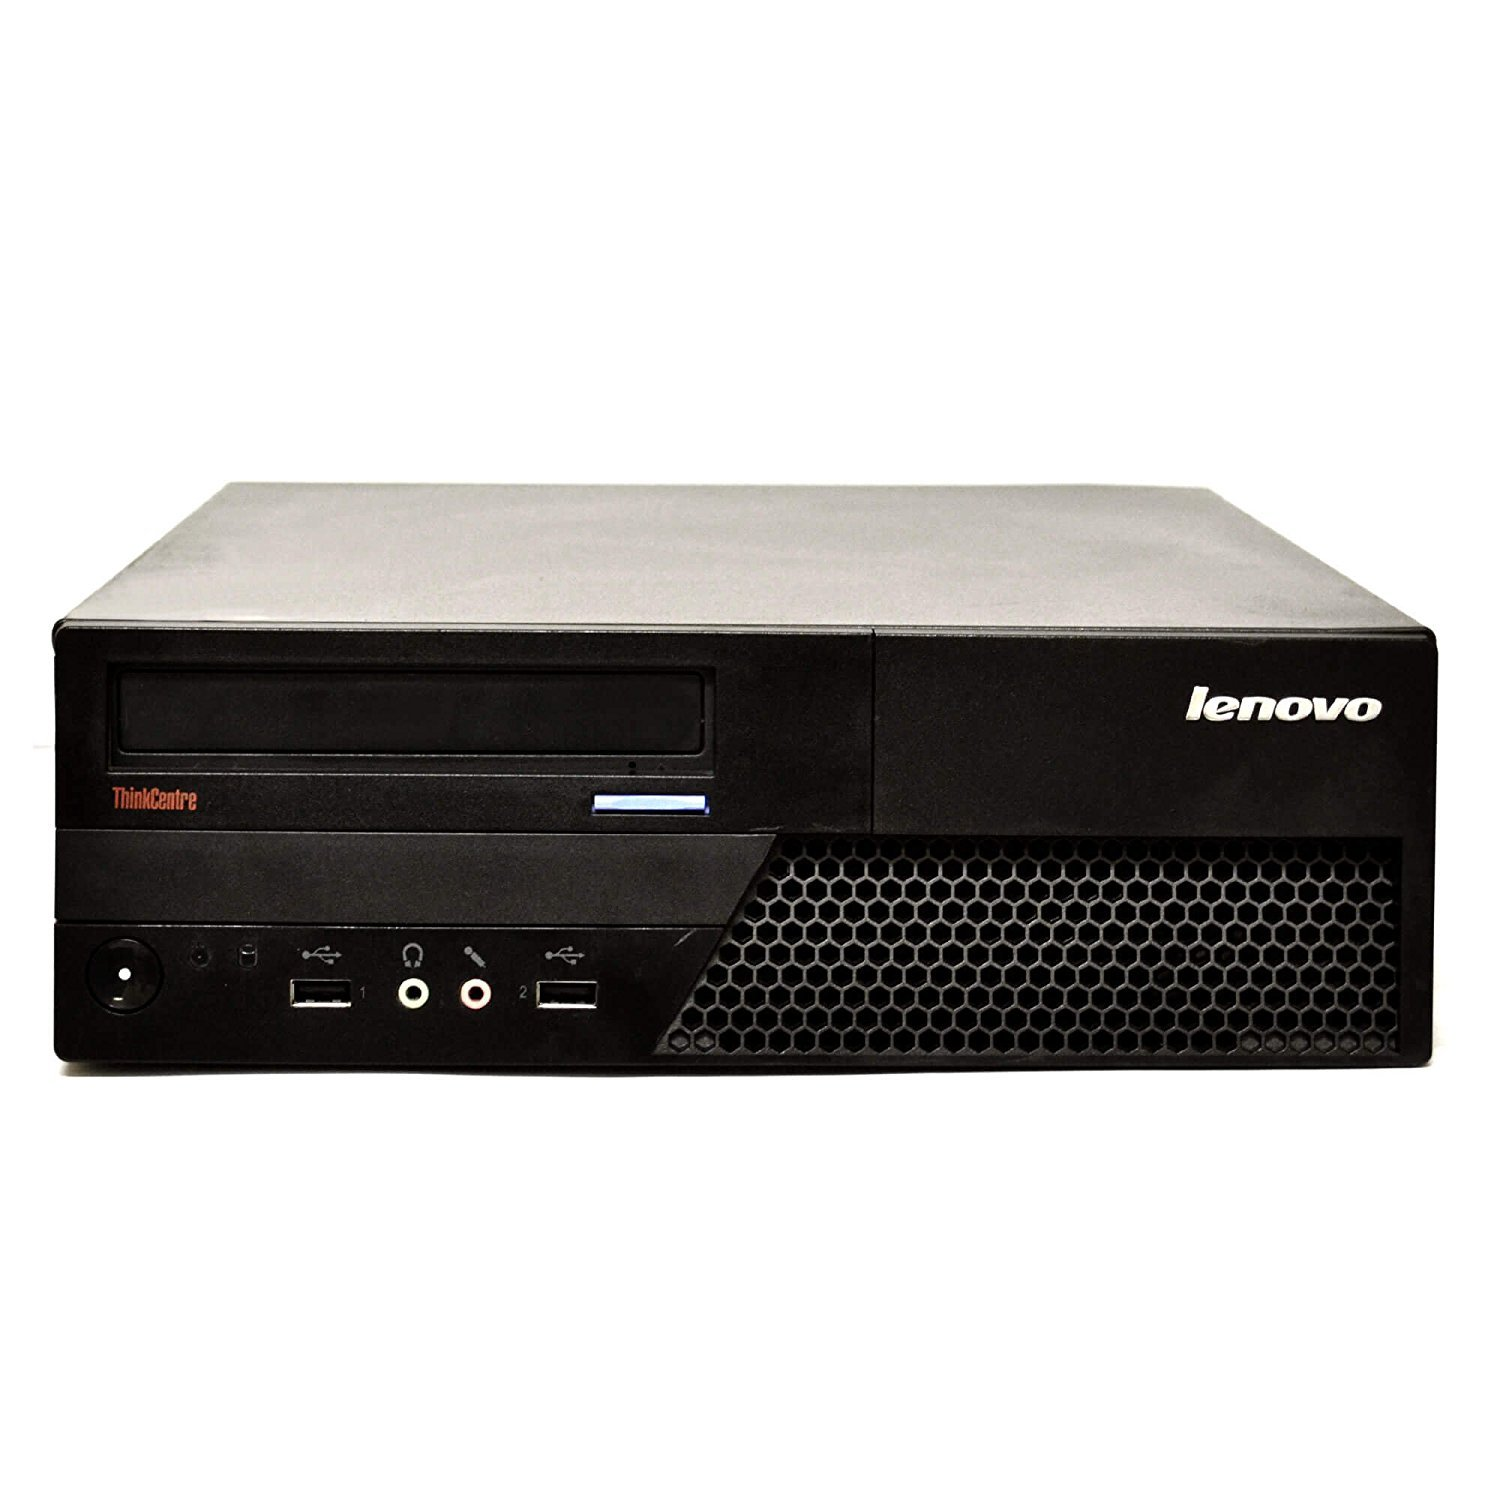 2018 Lenovo ThinkCentre M82 Small Form Factor Business Desktop Computer, Intel Quad-Core i5-3470 2.9GHz Processor, 16GB RAM, 2TB HDD, DVD, Windows 10 Professional (Certified Refurbished)